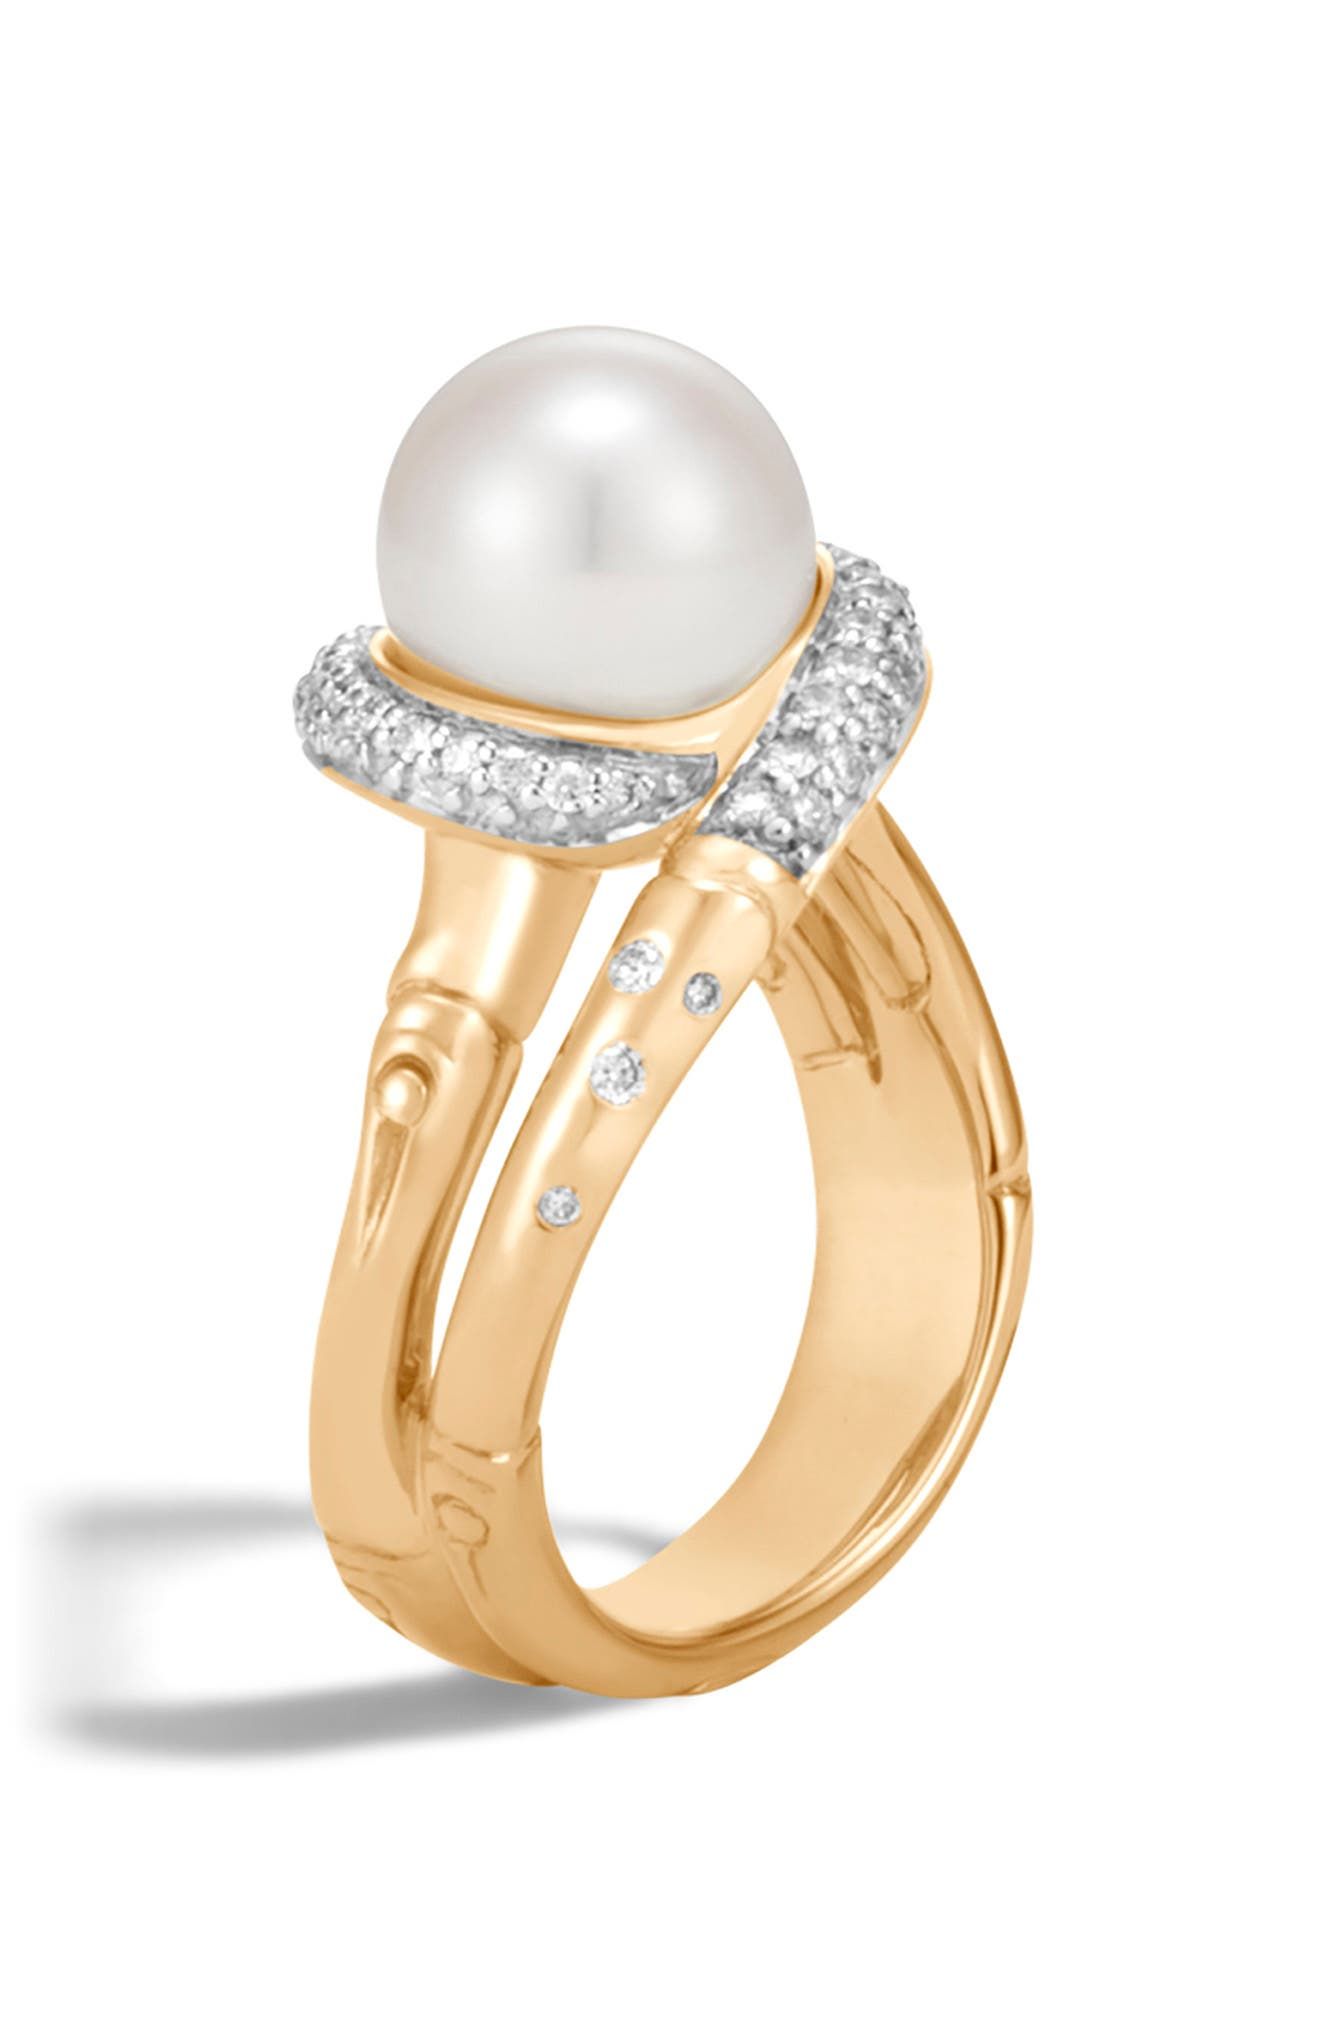 Bamboo 4.5Mm-14Mm Mother Of Pearl, Sterling Silver & 14K Yellow Gold Ring in Gold/ Diamond